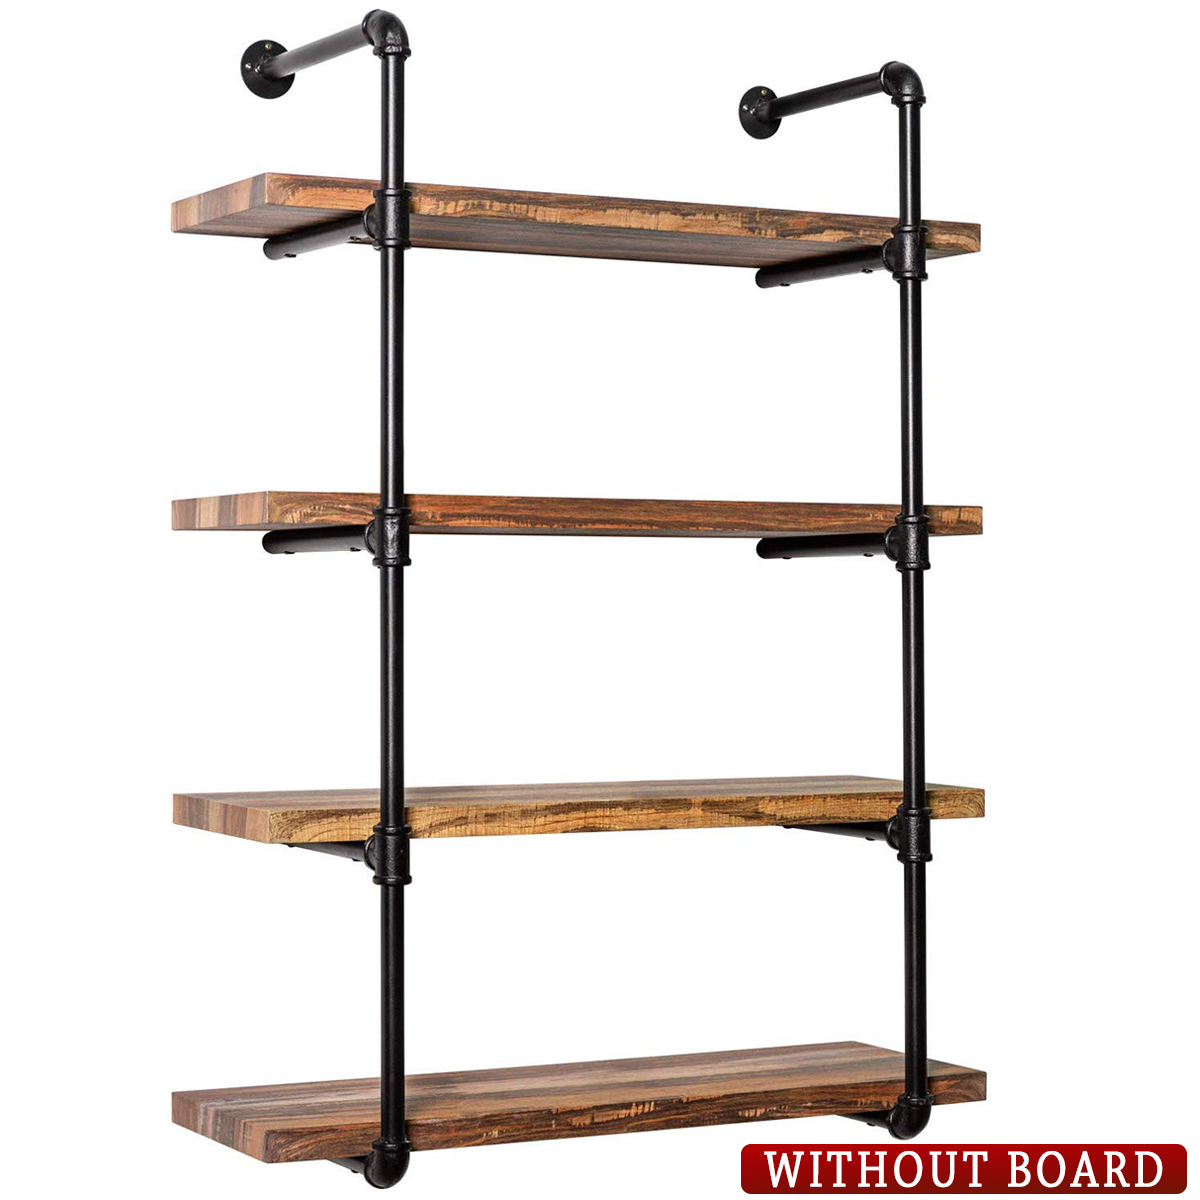 S morebuy 20 20 Tier Industrial Vintage Retro Pipe Shelving Brackets Without  Shelves, Wall Mounted Rustic Metal Floating Shelves, Book Shelves, Wall ...